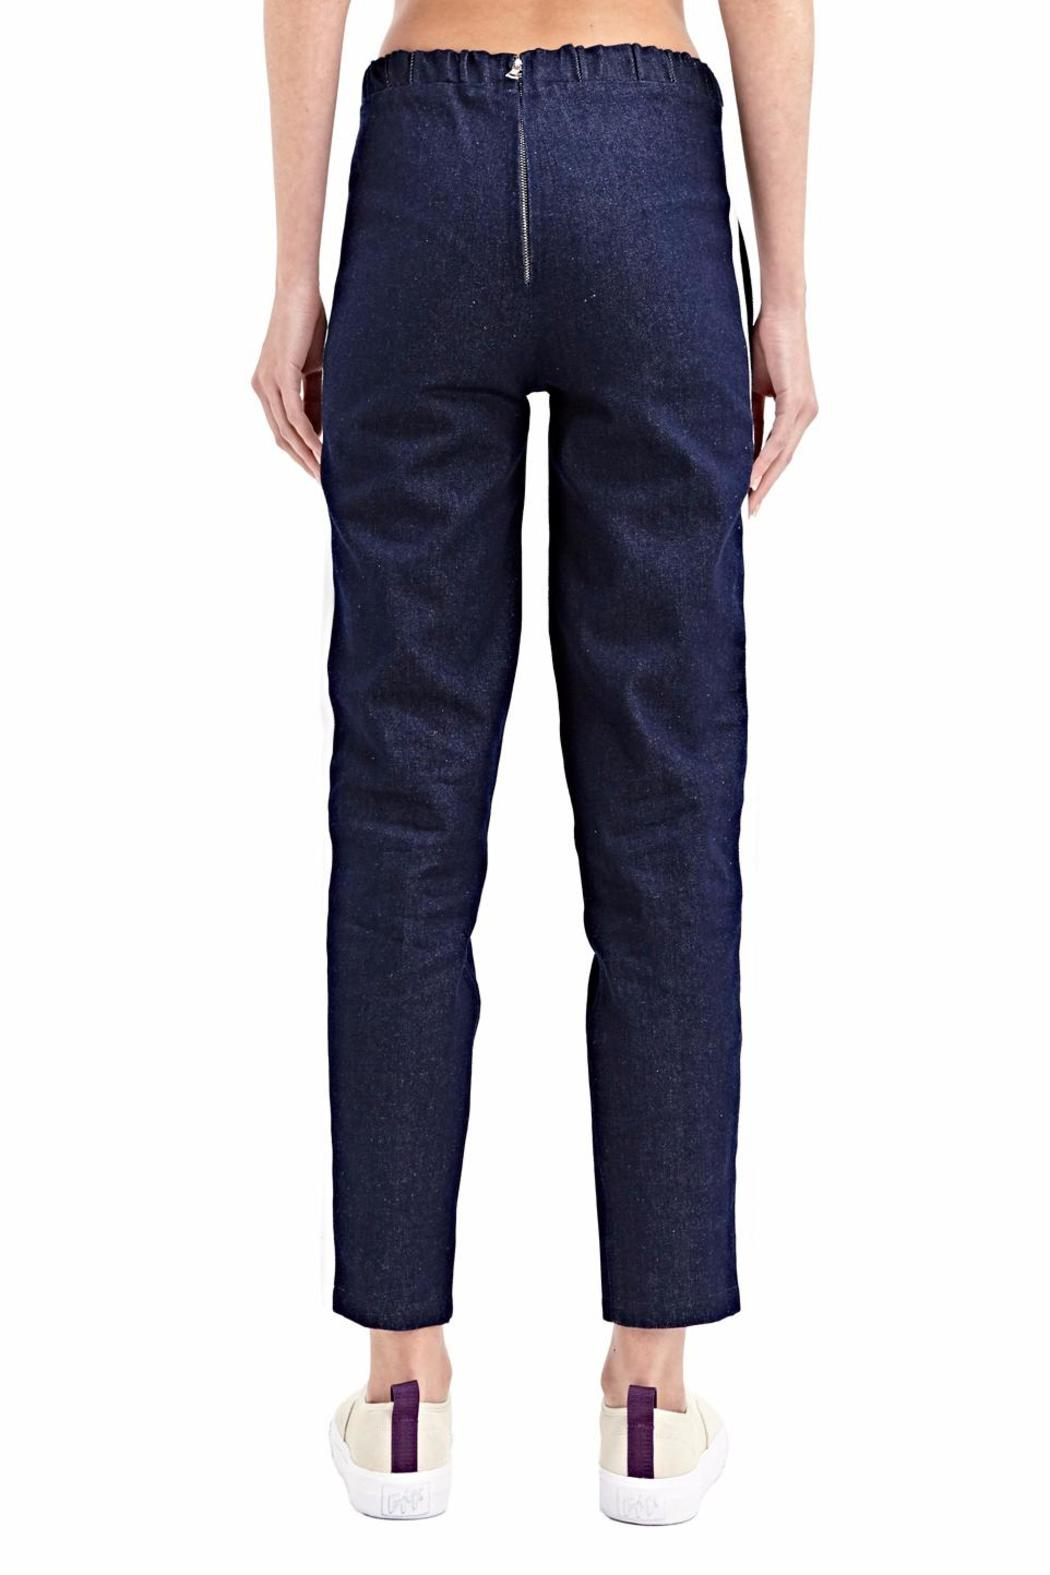 Charlie May Denim Track Pants - Side Cropped Image